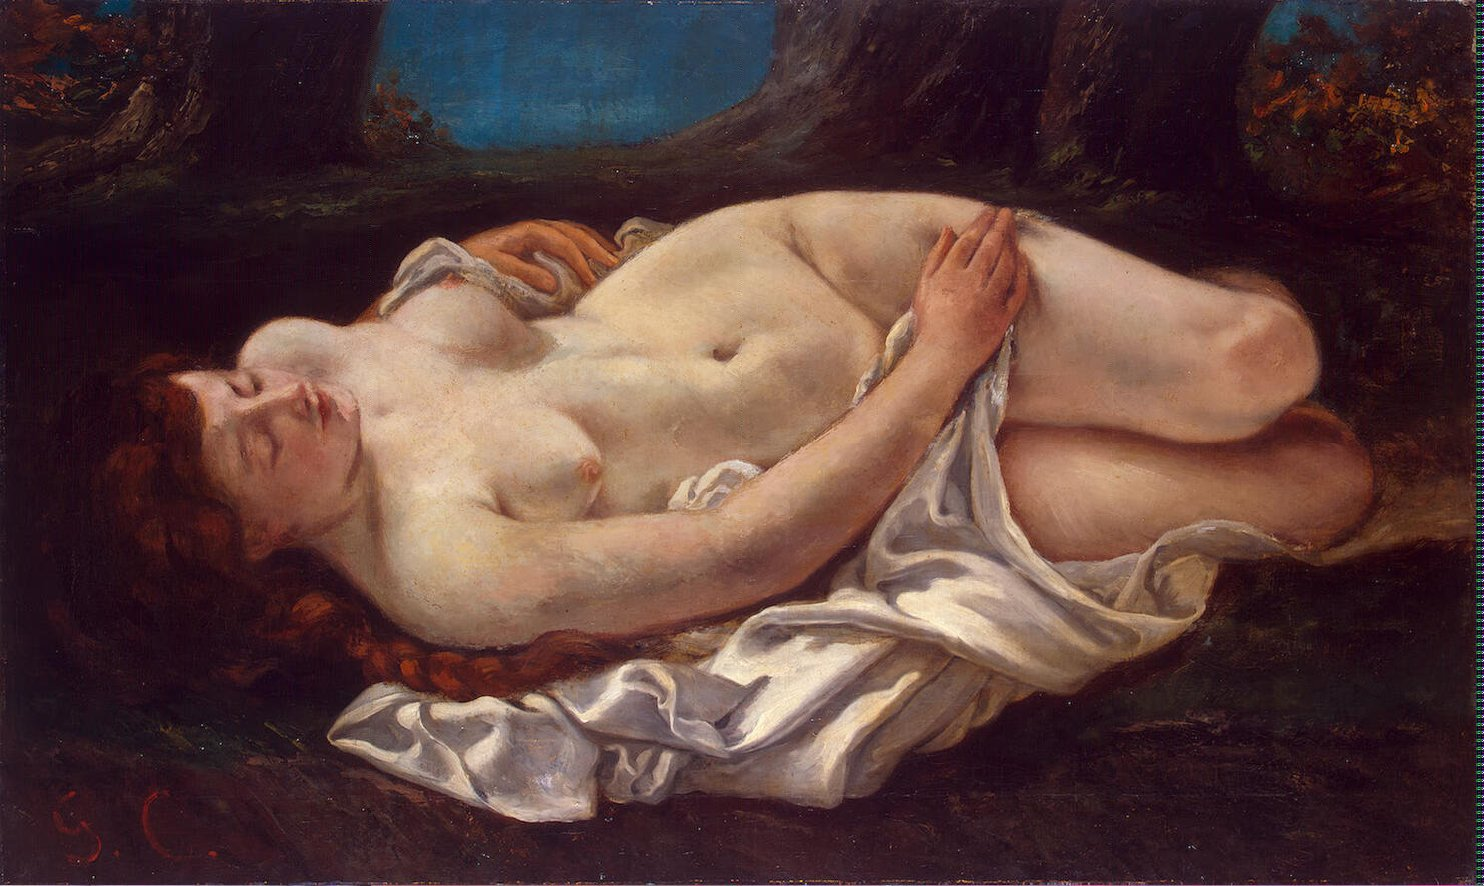 712901633_Courbet_Gustave_ZZZ_Reclining_Woman_123_504lo.jpg